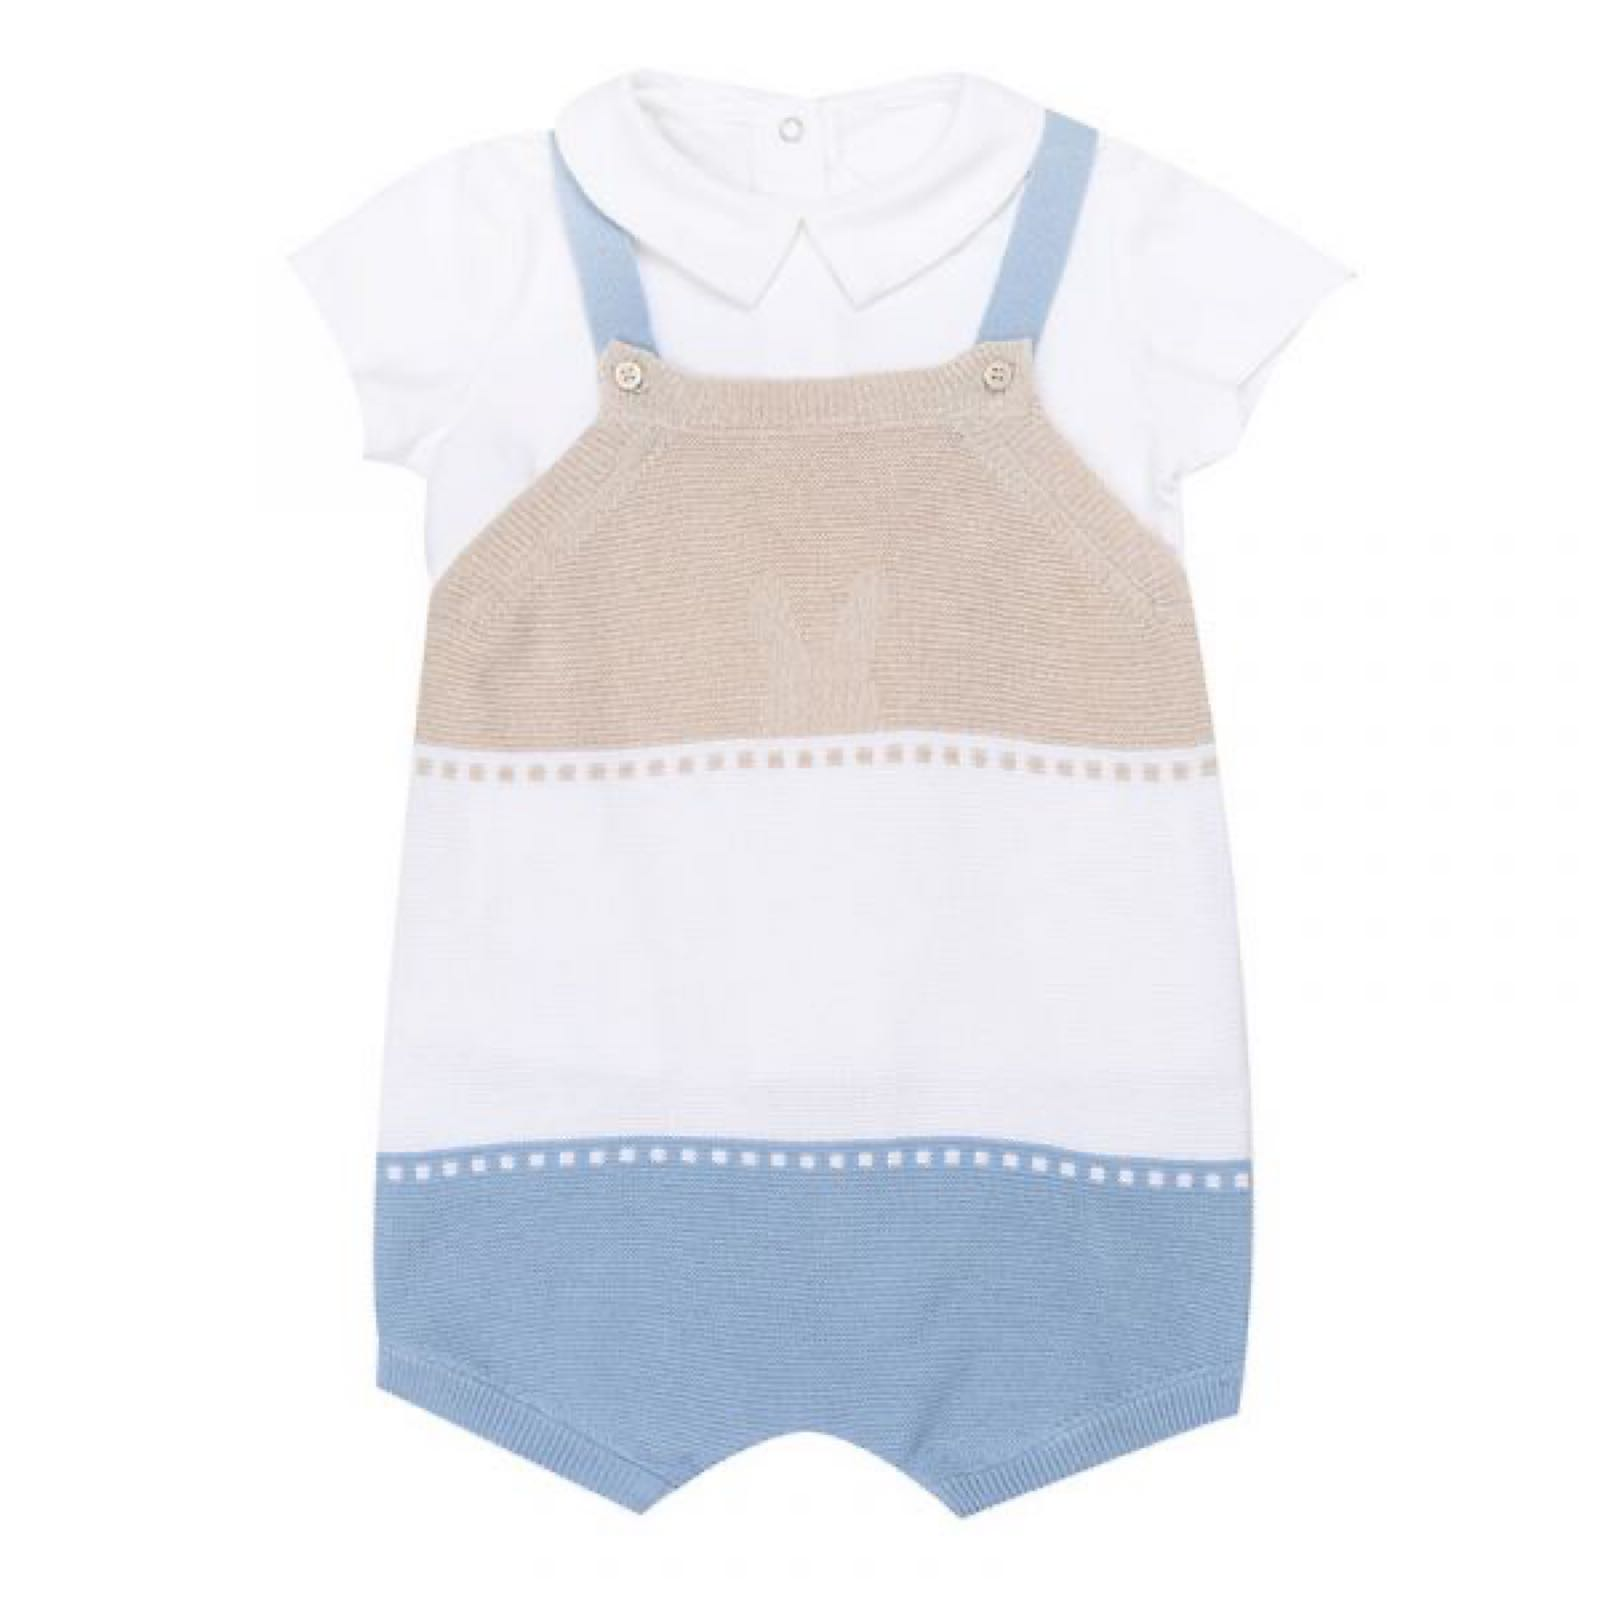 MAYORAL BABY BOY Knitted Romper and Shirt Set 1638-007